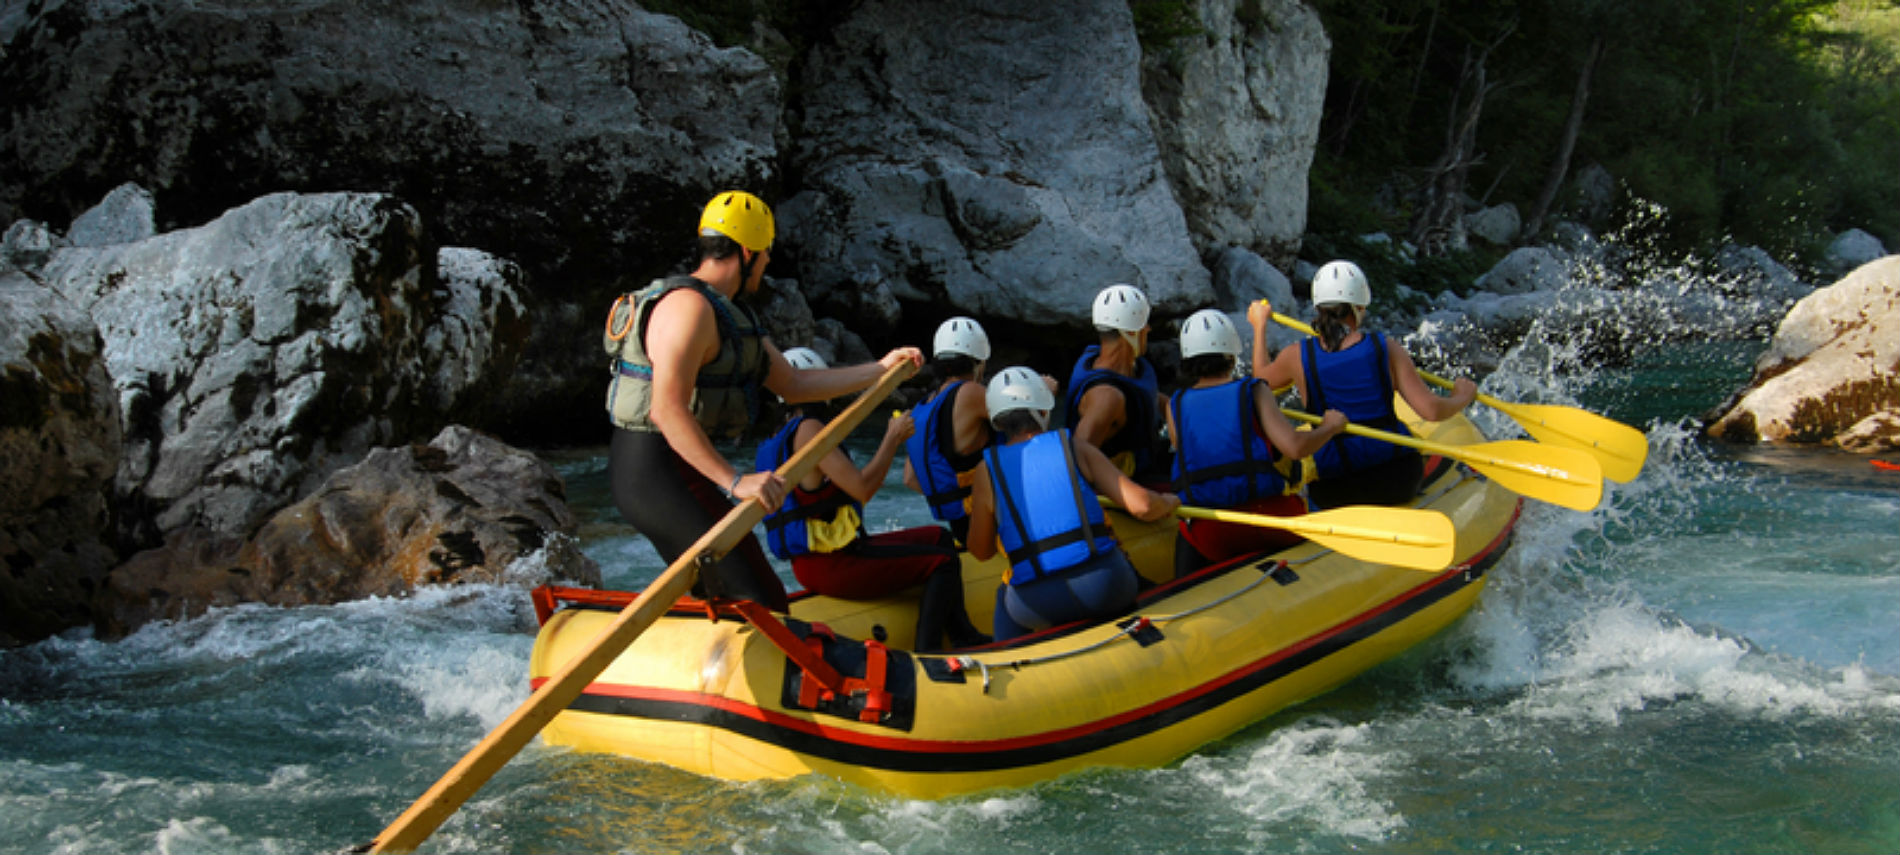 A yellow raft full of helmeted rowers in fast-moving water near rocks.